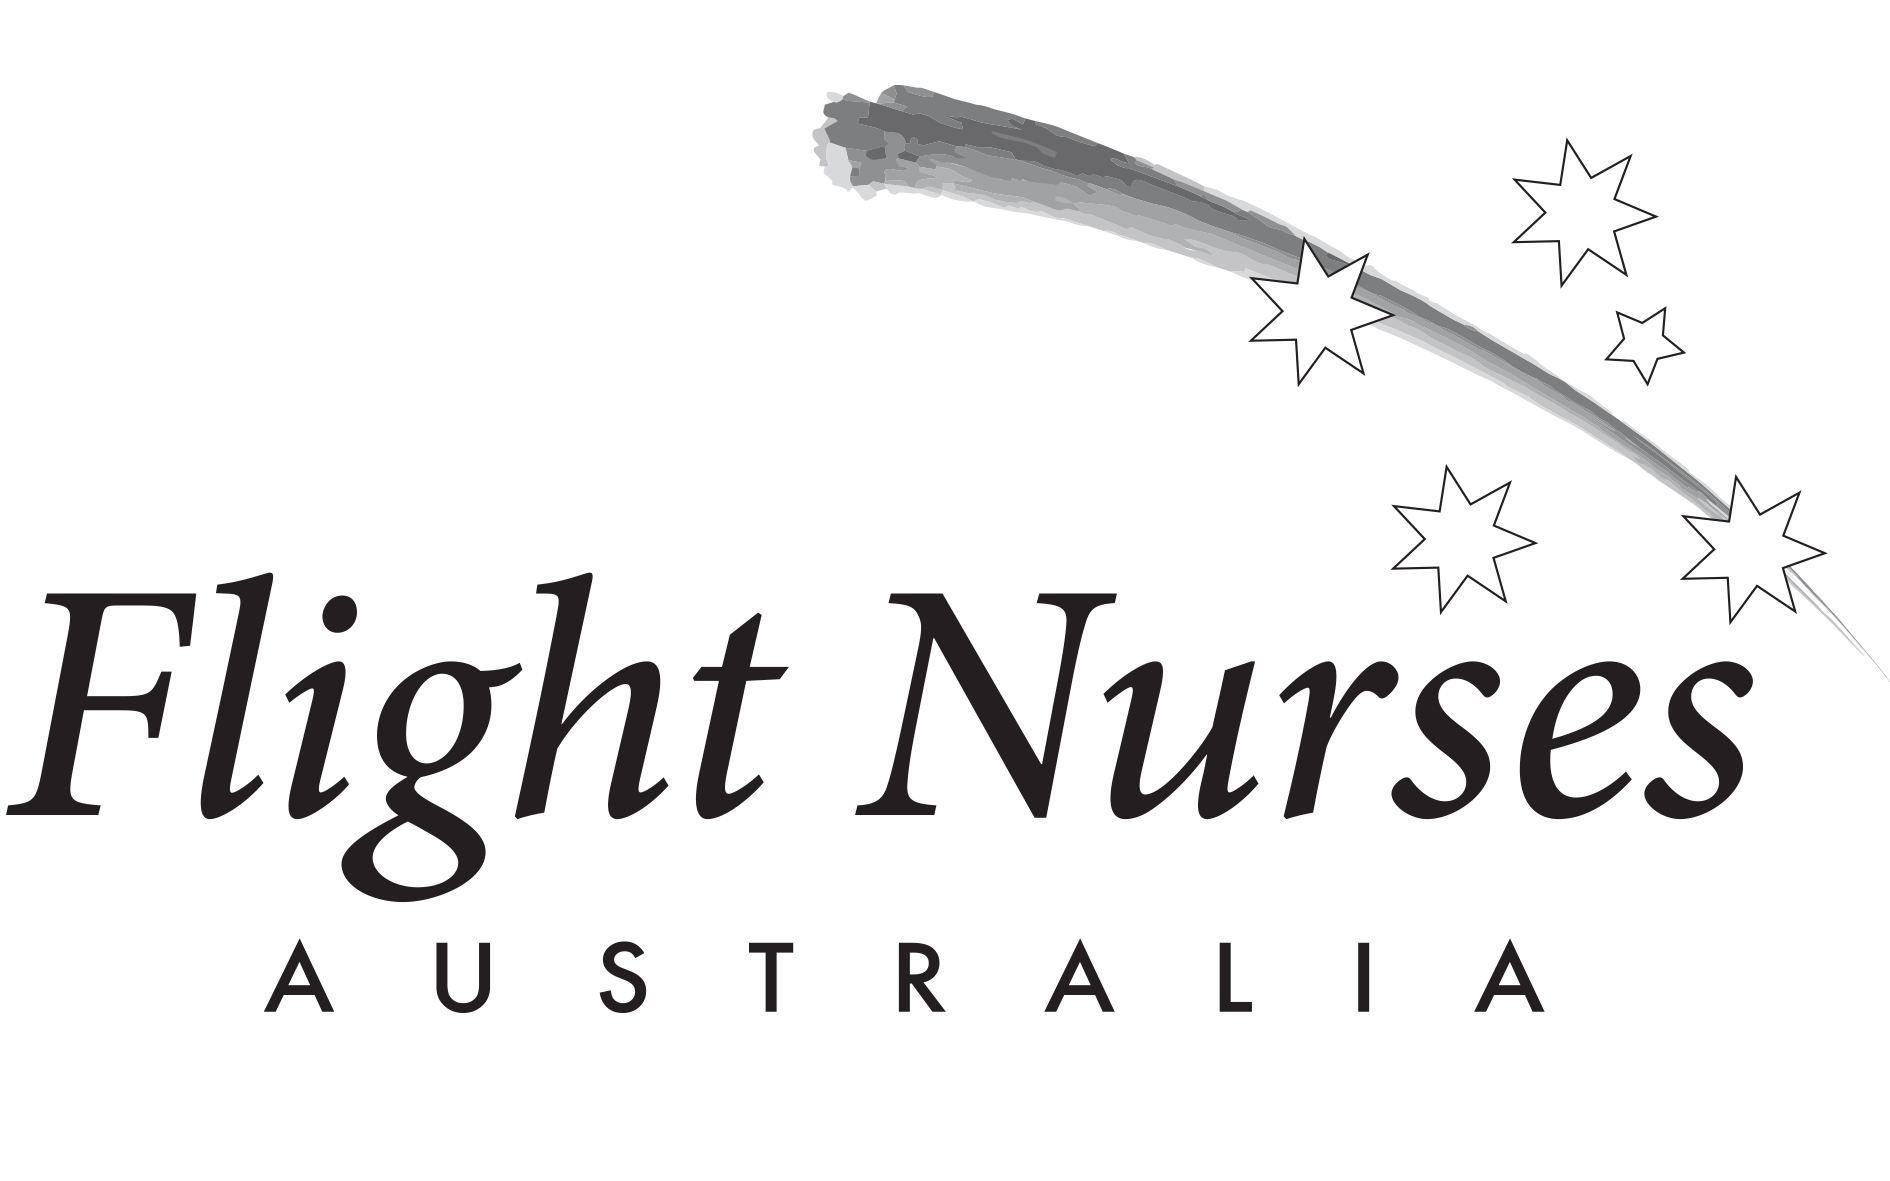 Flight Nurses Australia